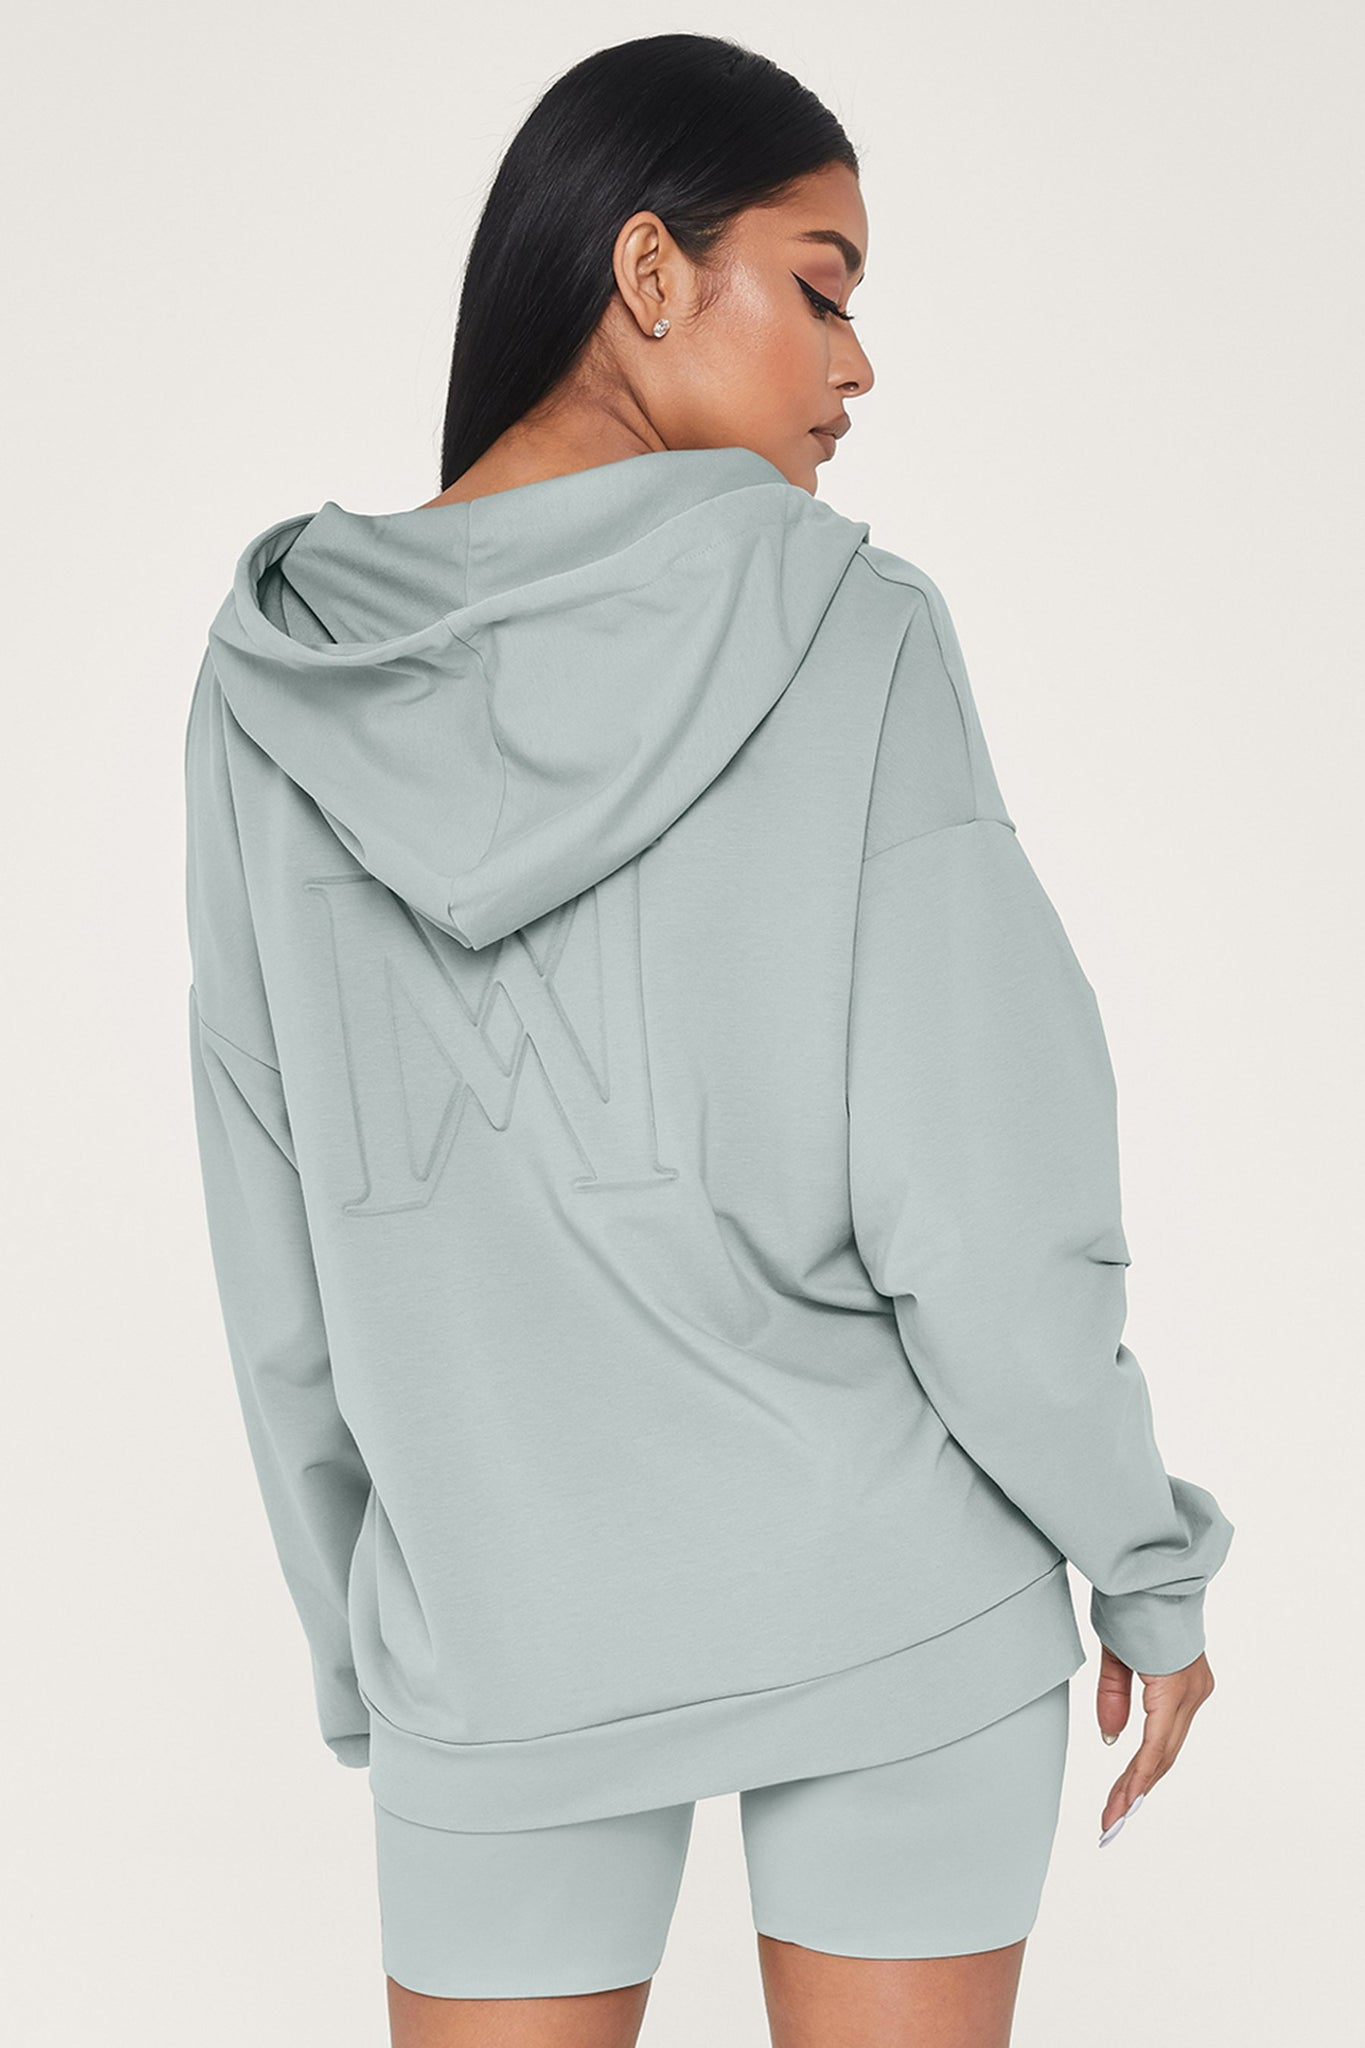 Maia Long Sleeve Zip Up Hoodie Jacket - Storm - MESHKI